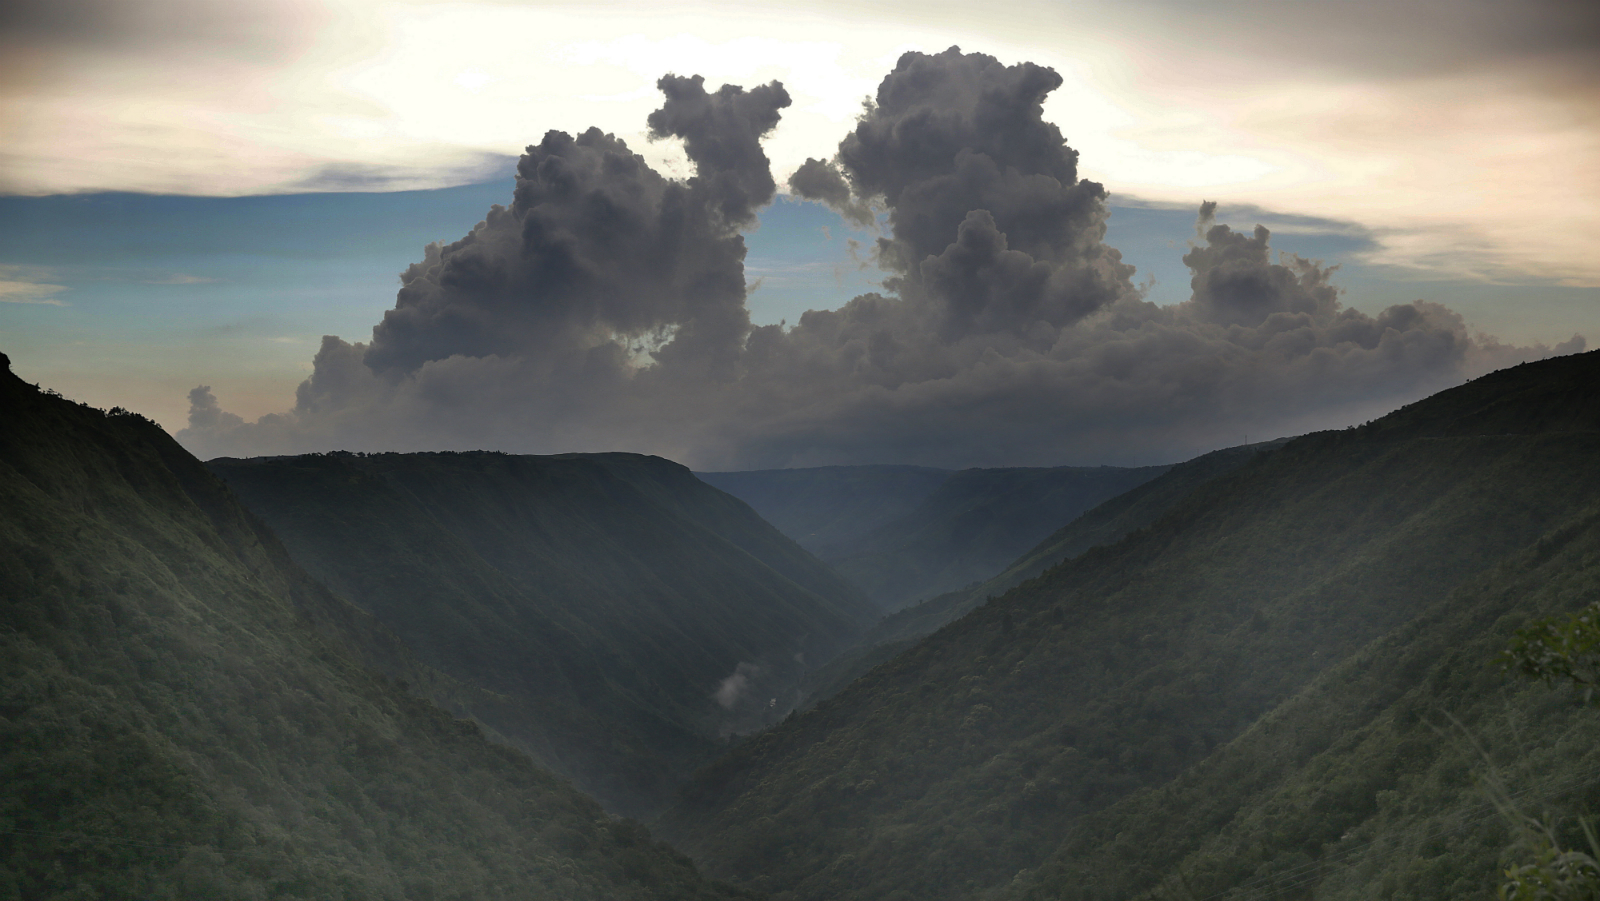 epa05542835 A picture made available on 16 September 2016 shows couds merging with the mountains in the evening in the Cherrapunji, Meghalaya, India, 25 August 2016. Cherrapunji might have lost its title of the 'wettest place on earth' to nearby Mawsynram by a few mm but it definitely retains its charms as a monsoon paradise with a quite a few titles to its name. Situated in the north eastern state of Meghalaya whose name itself means 'abode of rain' Cherrapunjee is bursting at the seams with monsoon magic.